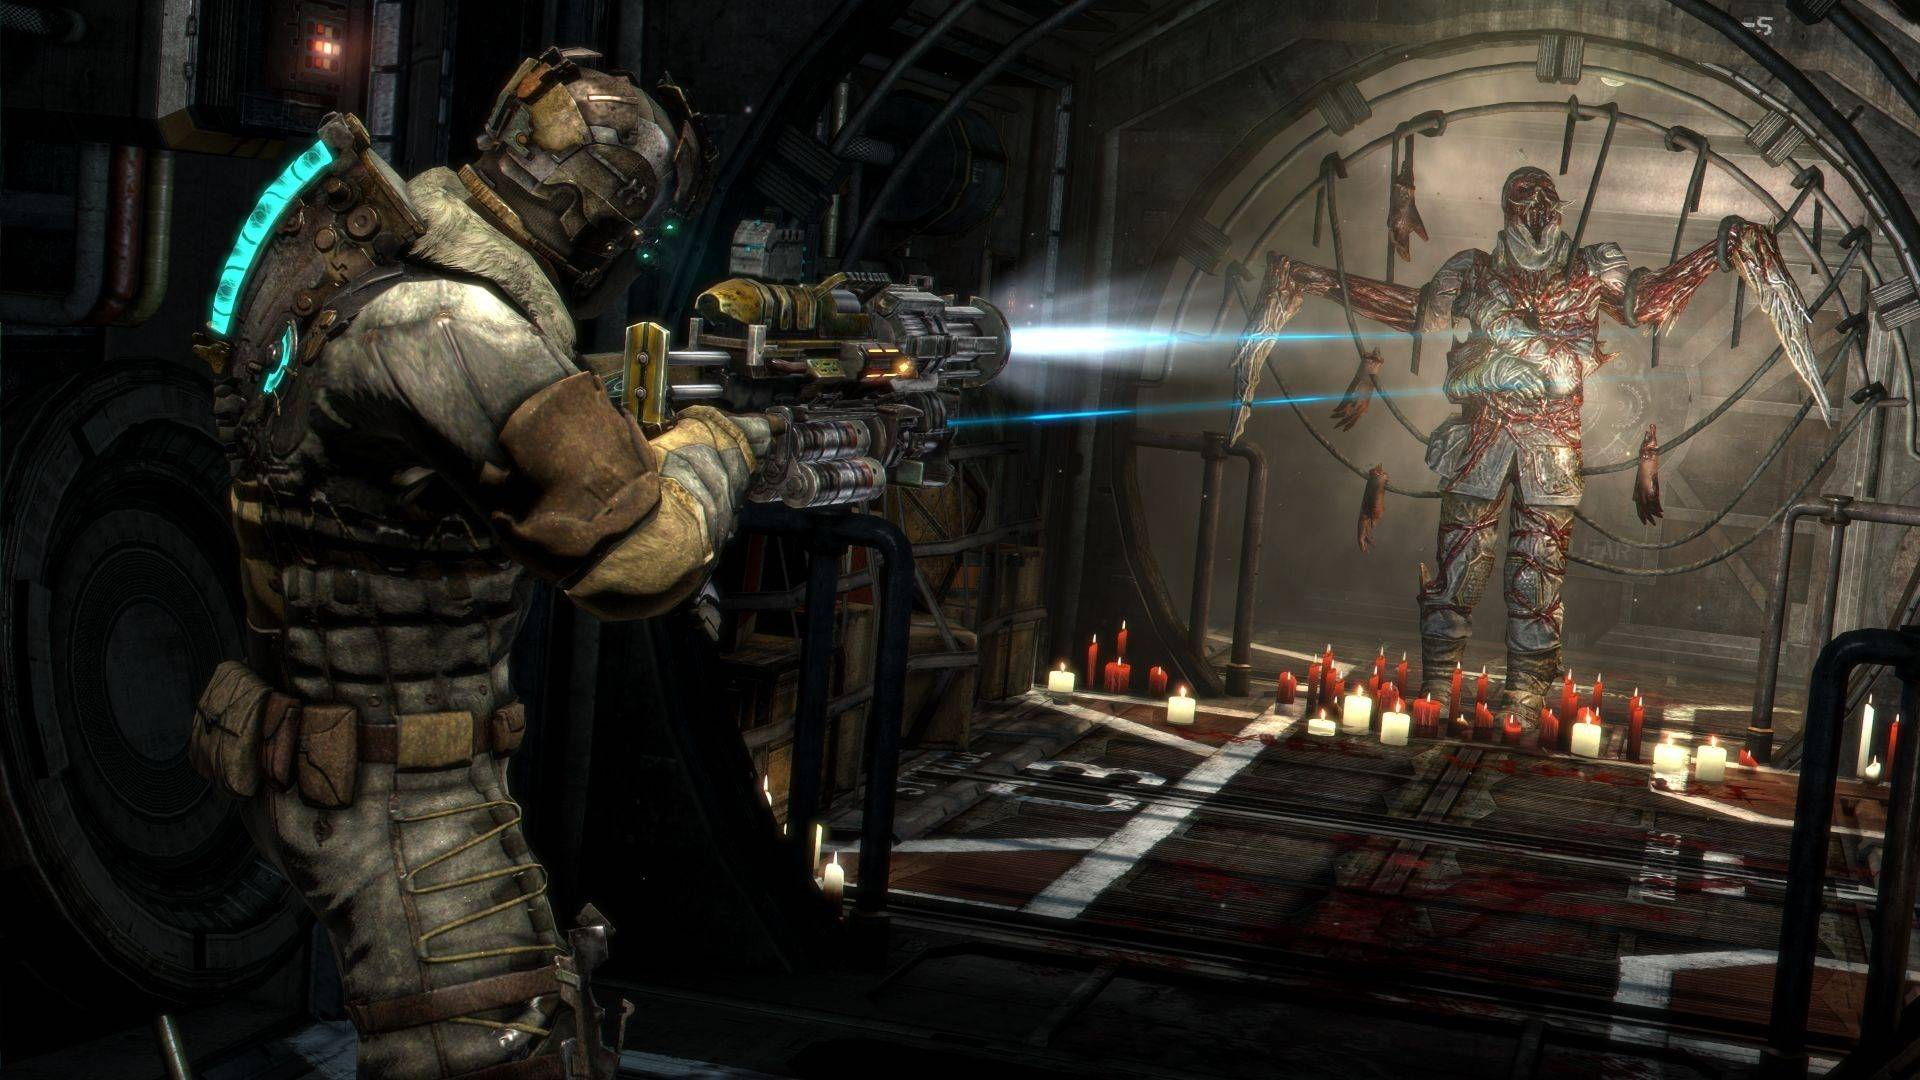 Dead Space Remake Early Comparison Highlights Massive Visual, Atmosphere Improvements